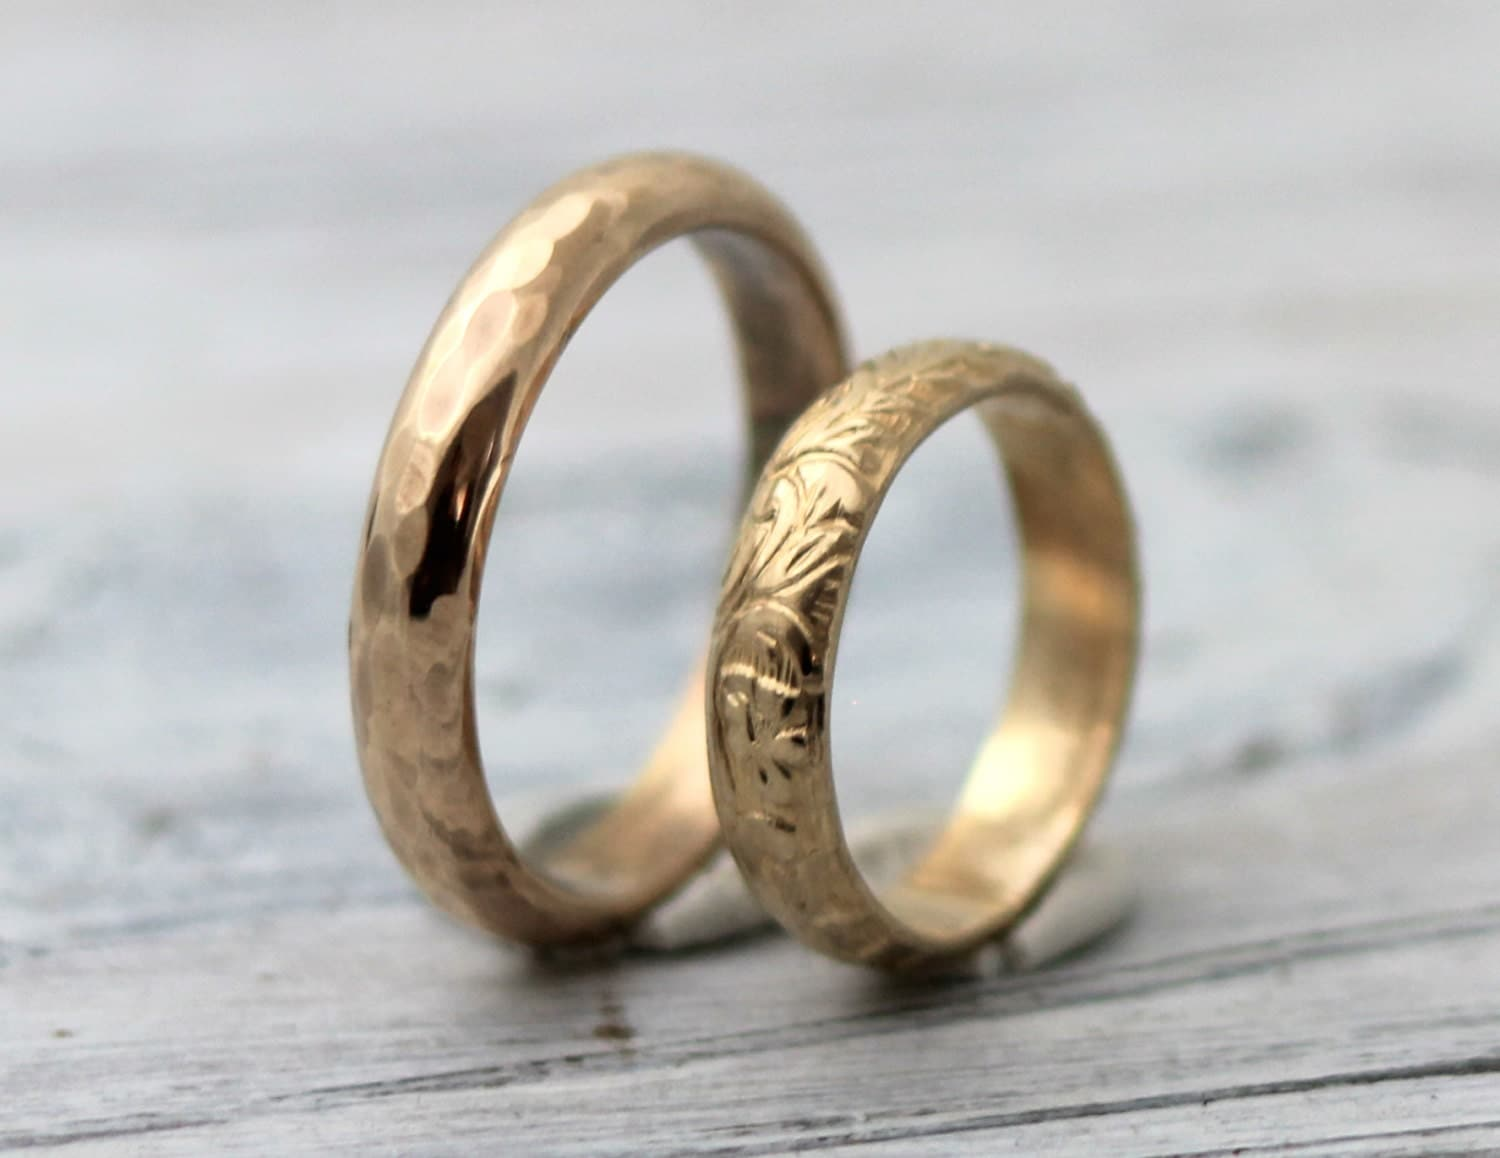 His and Hers Couples Rings-His and Hers wedding Rings Modern